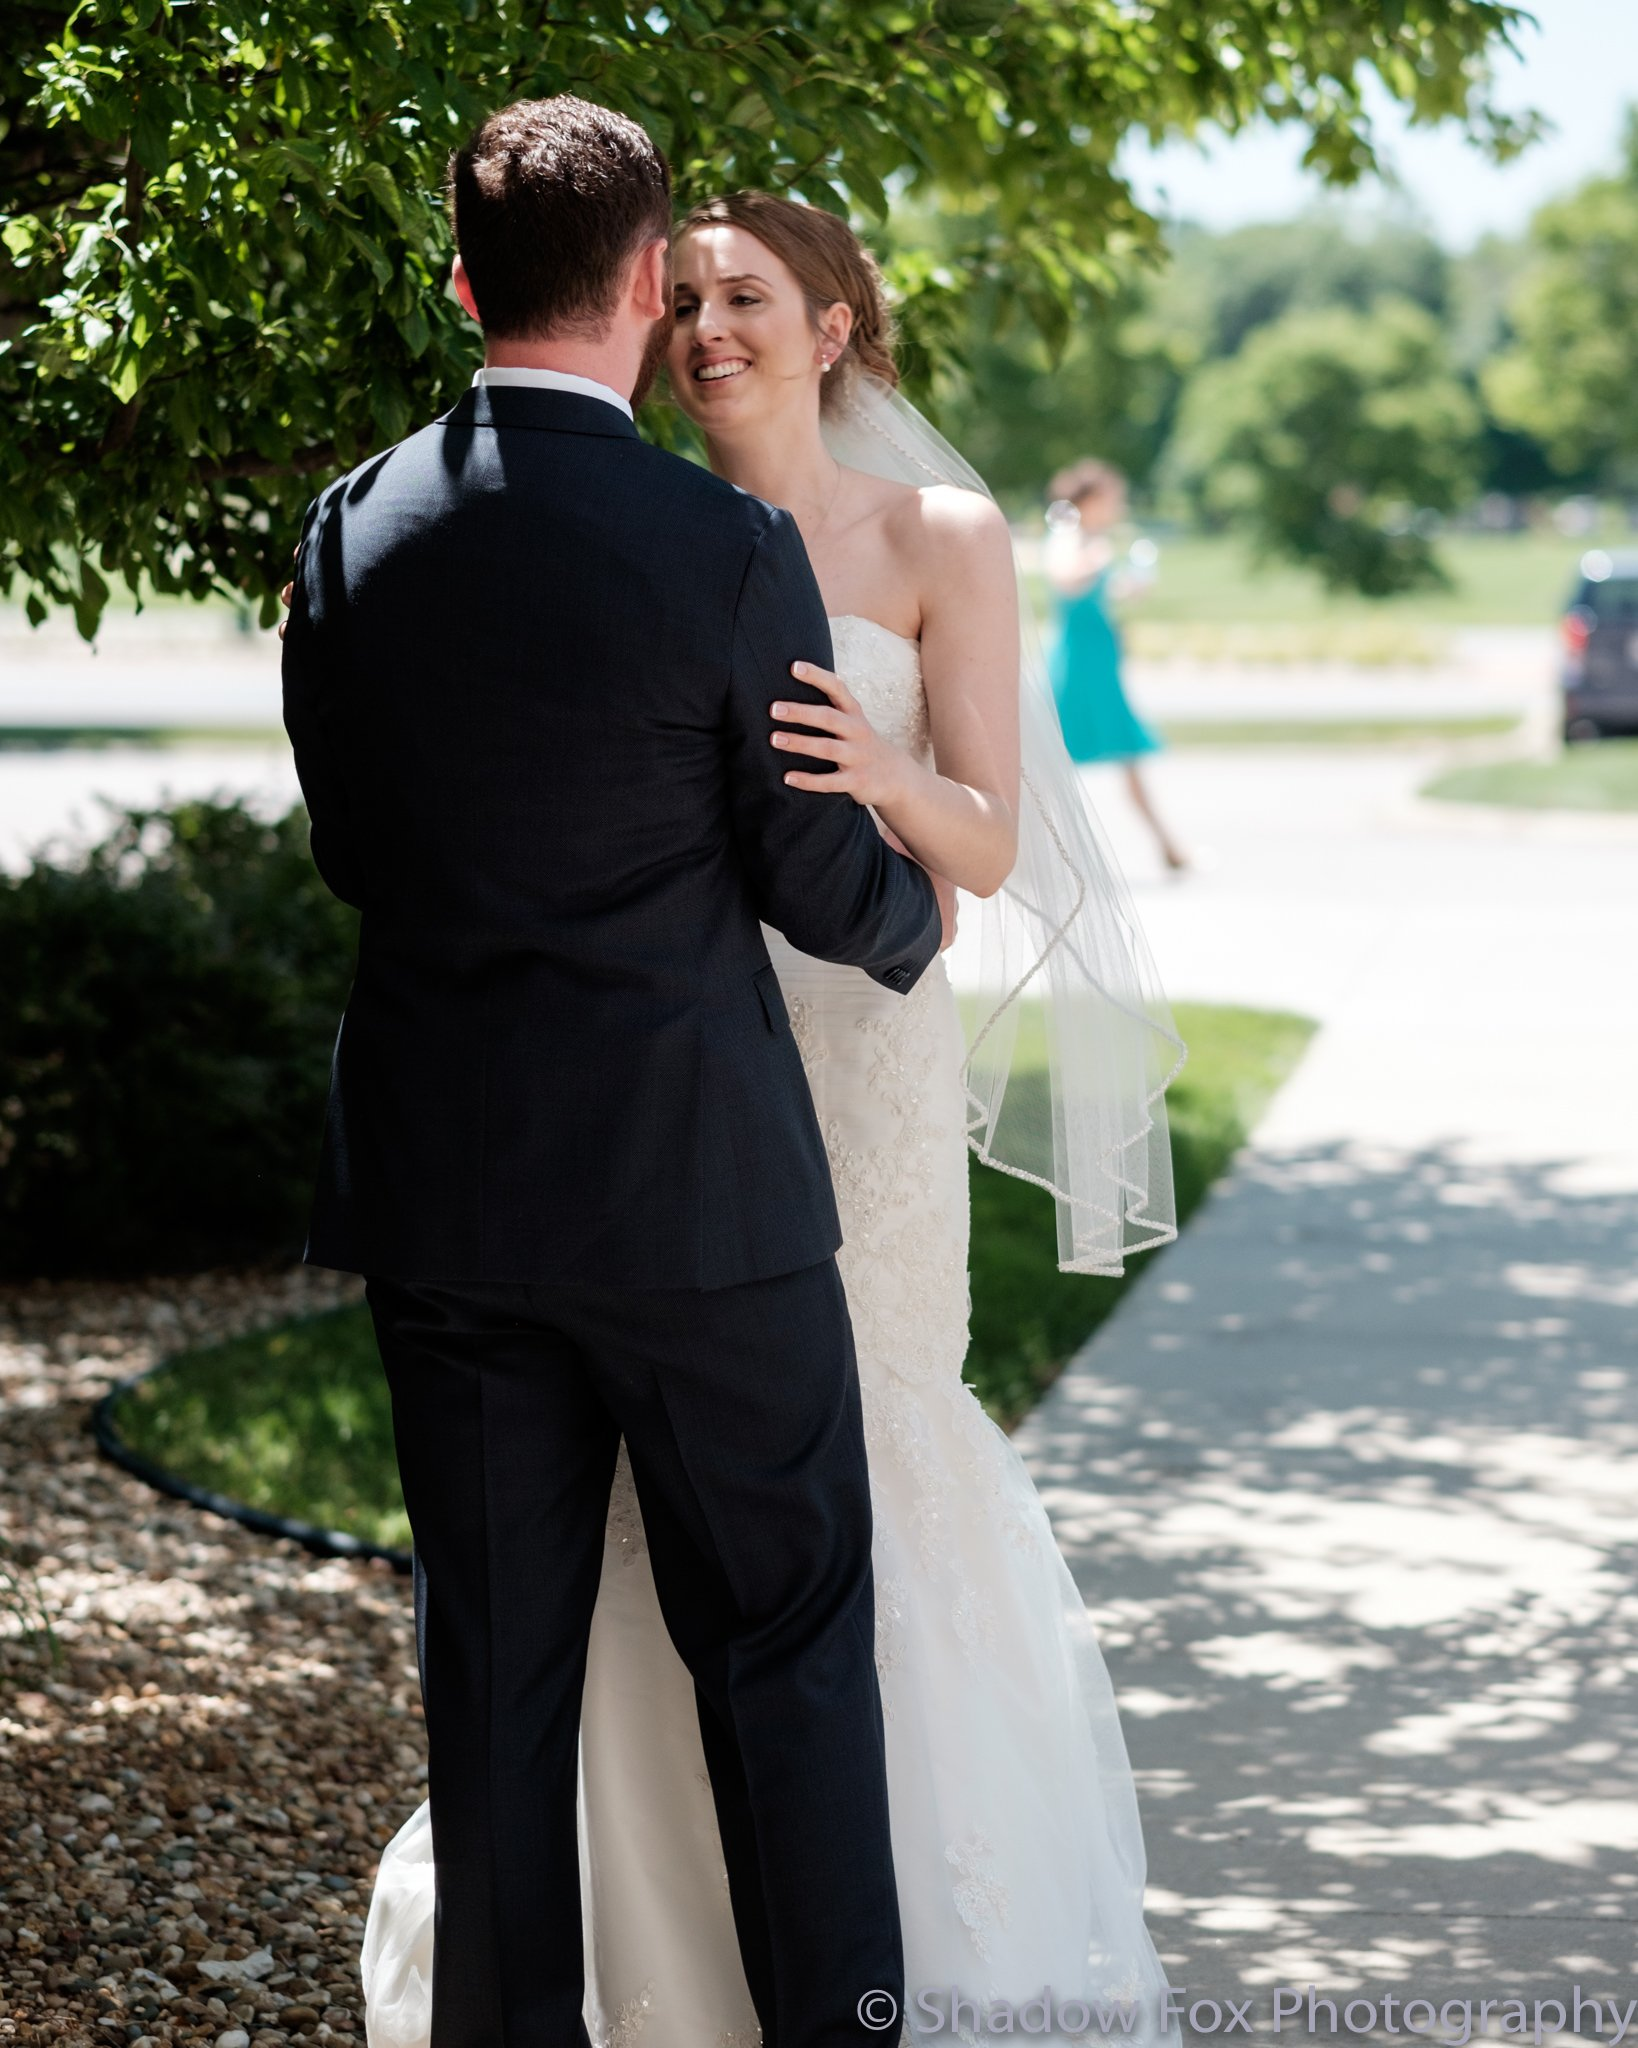 Bride and Groom see each other for the first time before wedding ceremony